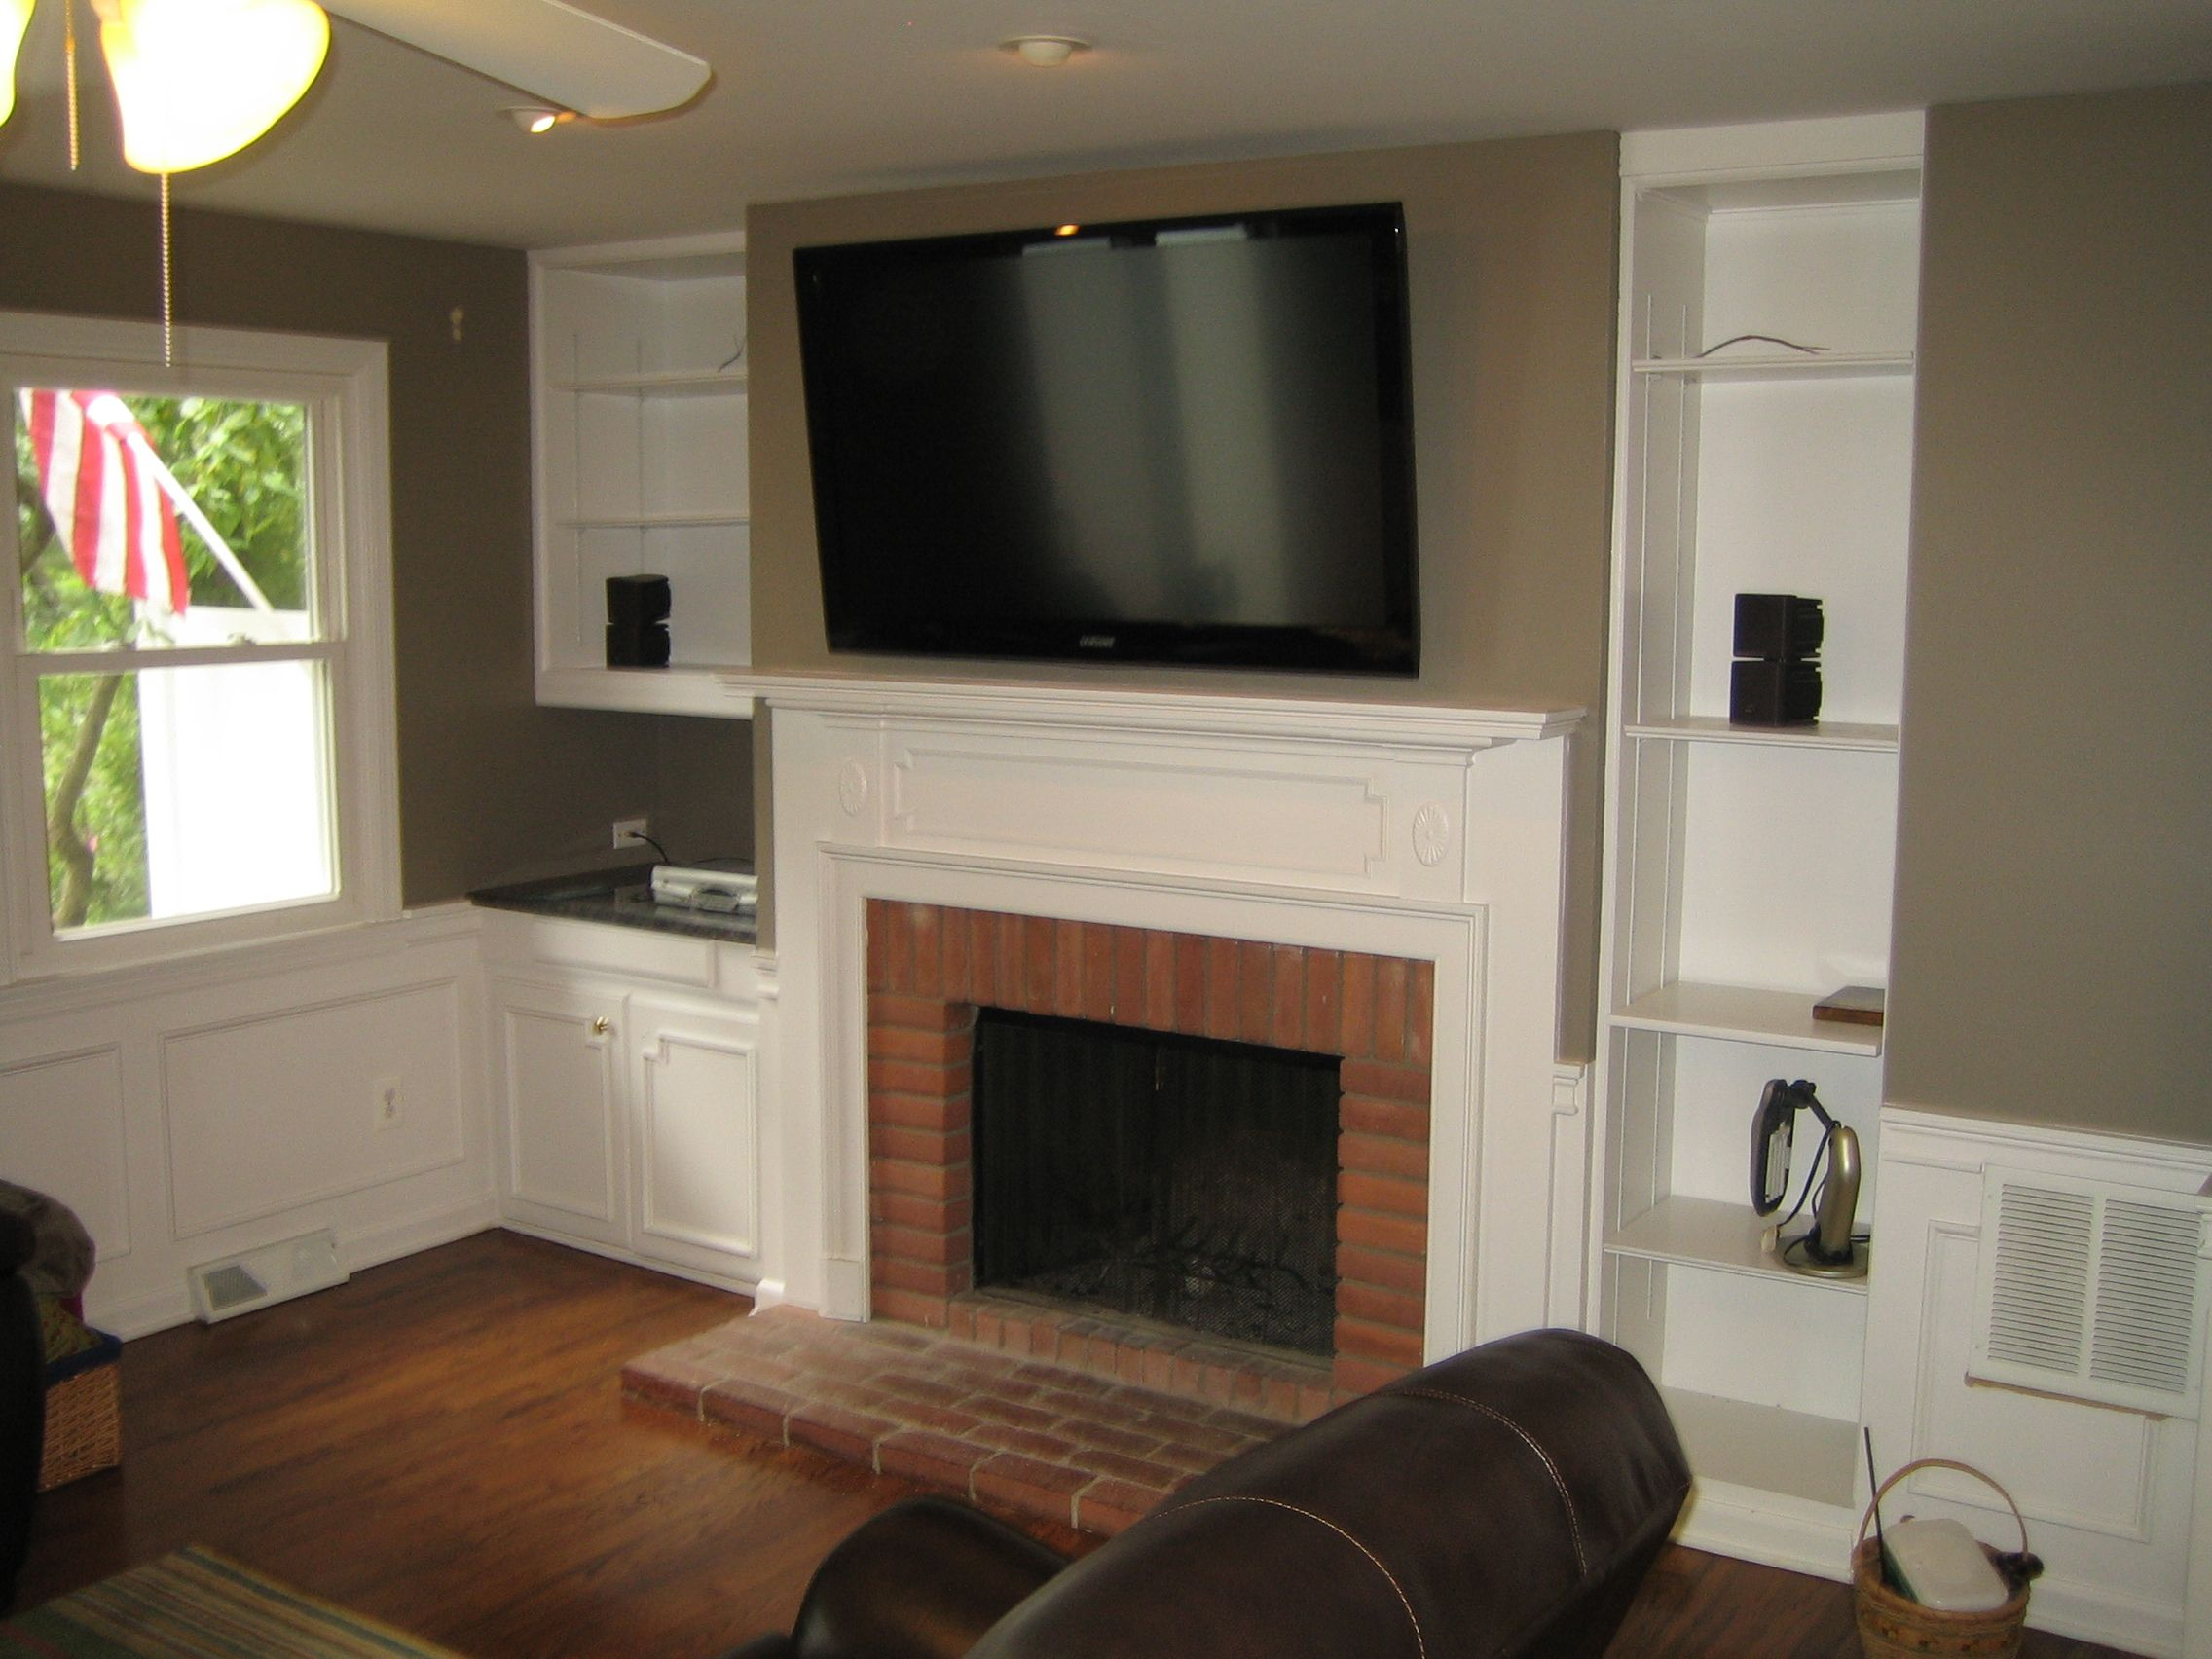 How Mount Tv Fireplace Ehow The Area Above Your Fireplace Is An Ideal Place To Mount A Television De Tv Above Fireplace Fireplace Design Brick Fireplace